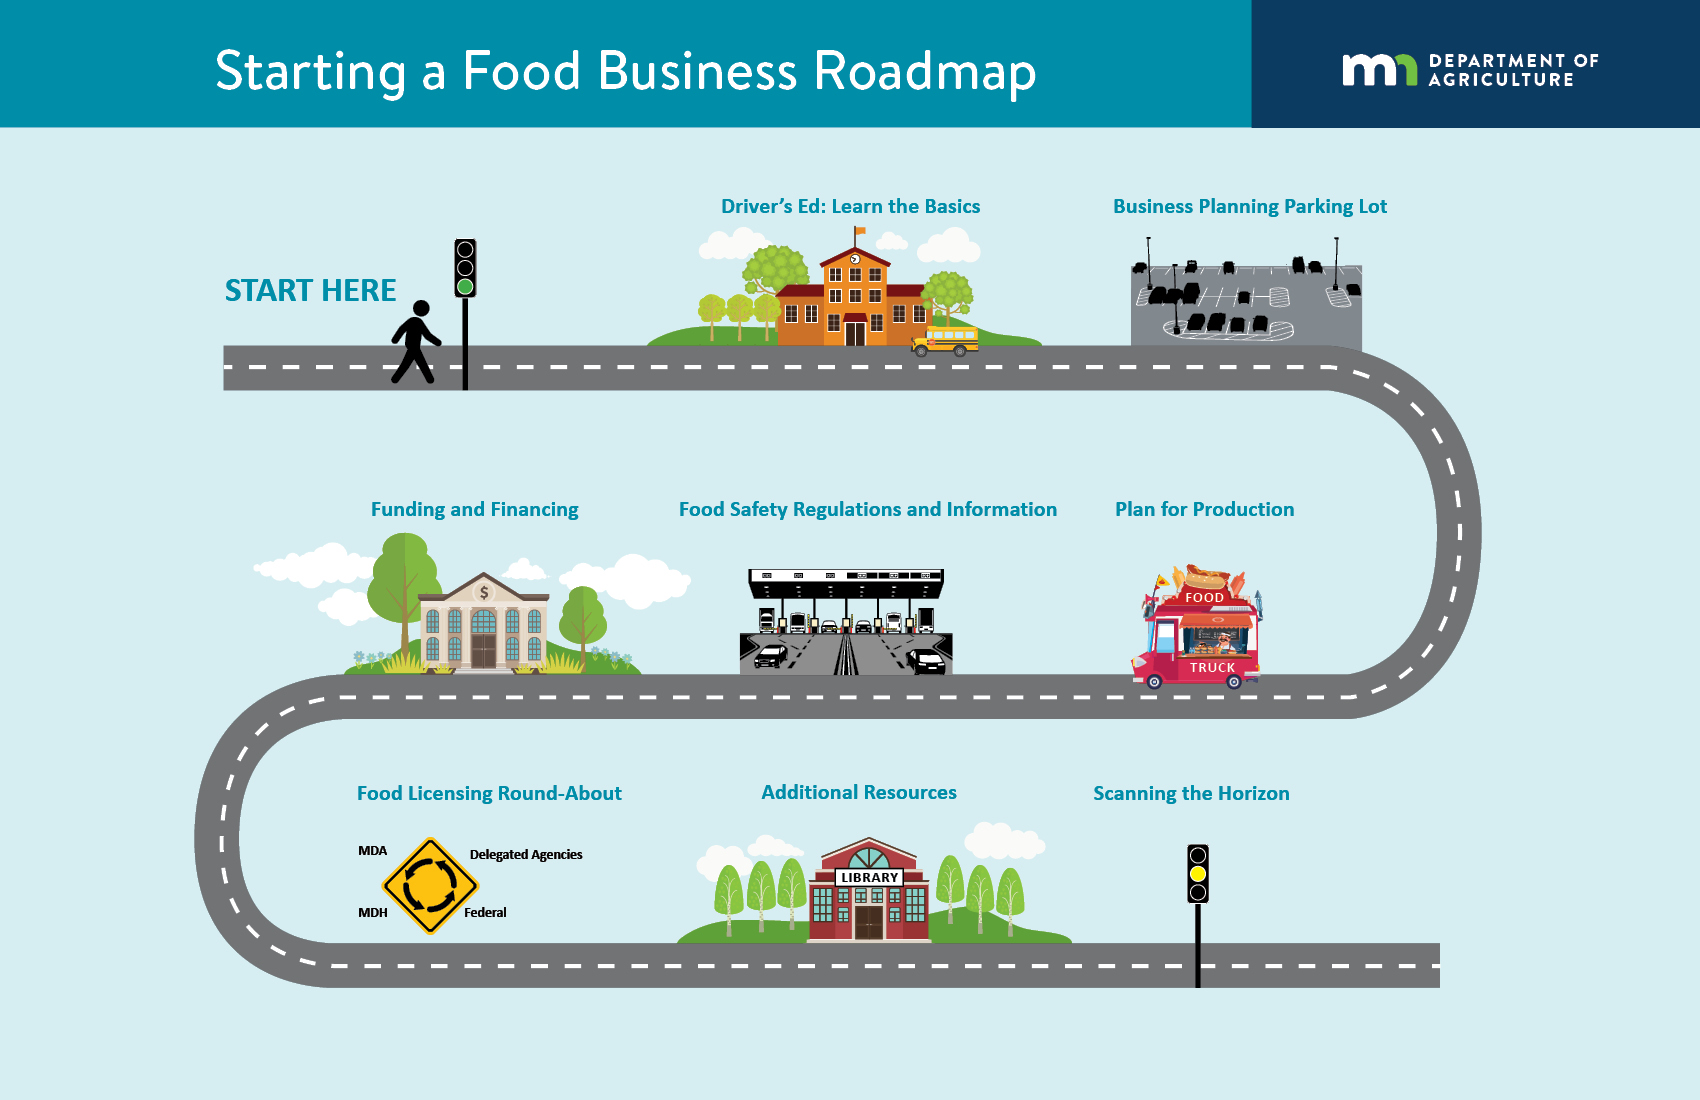 Food business roadmap graphic